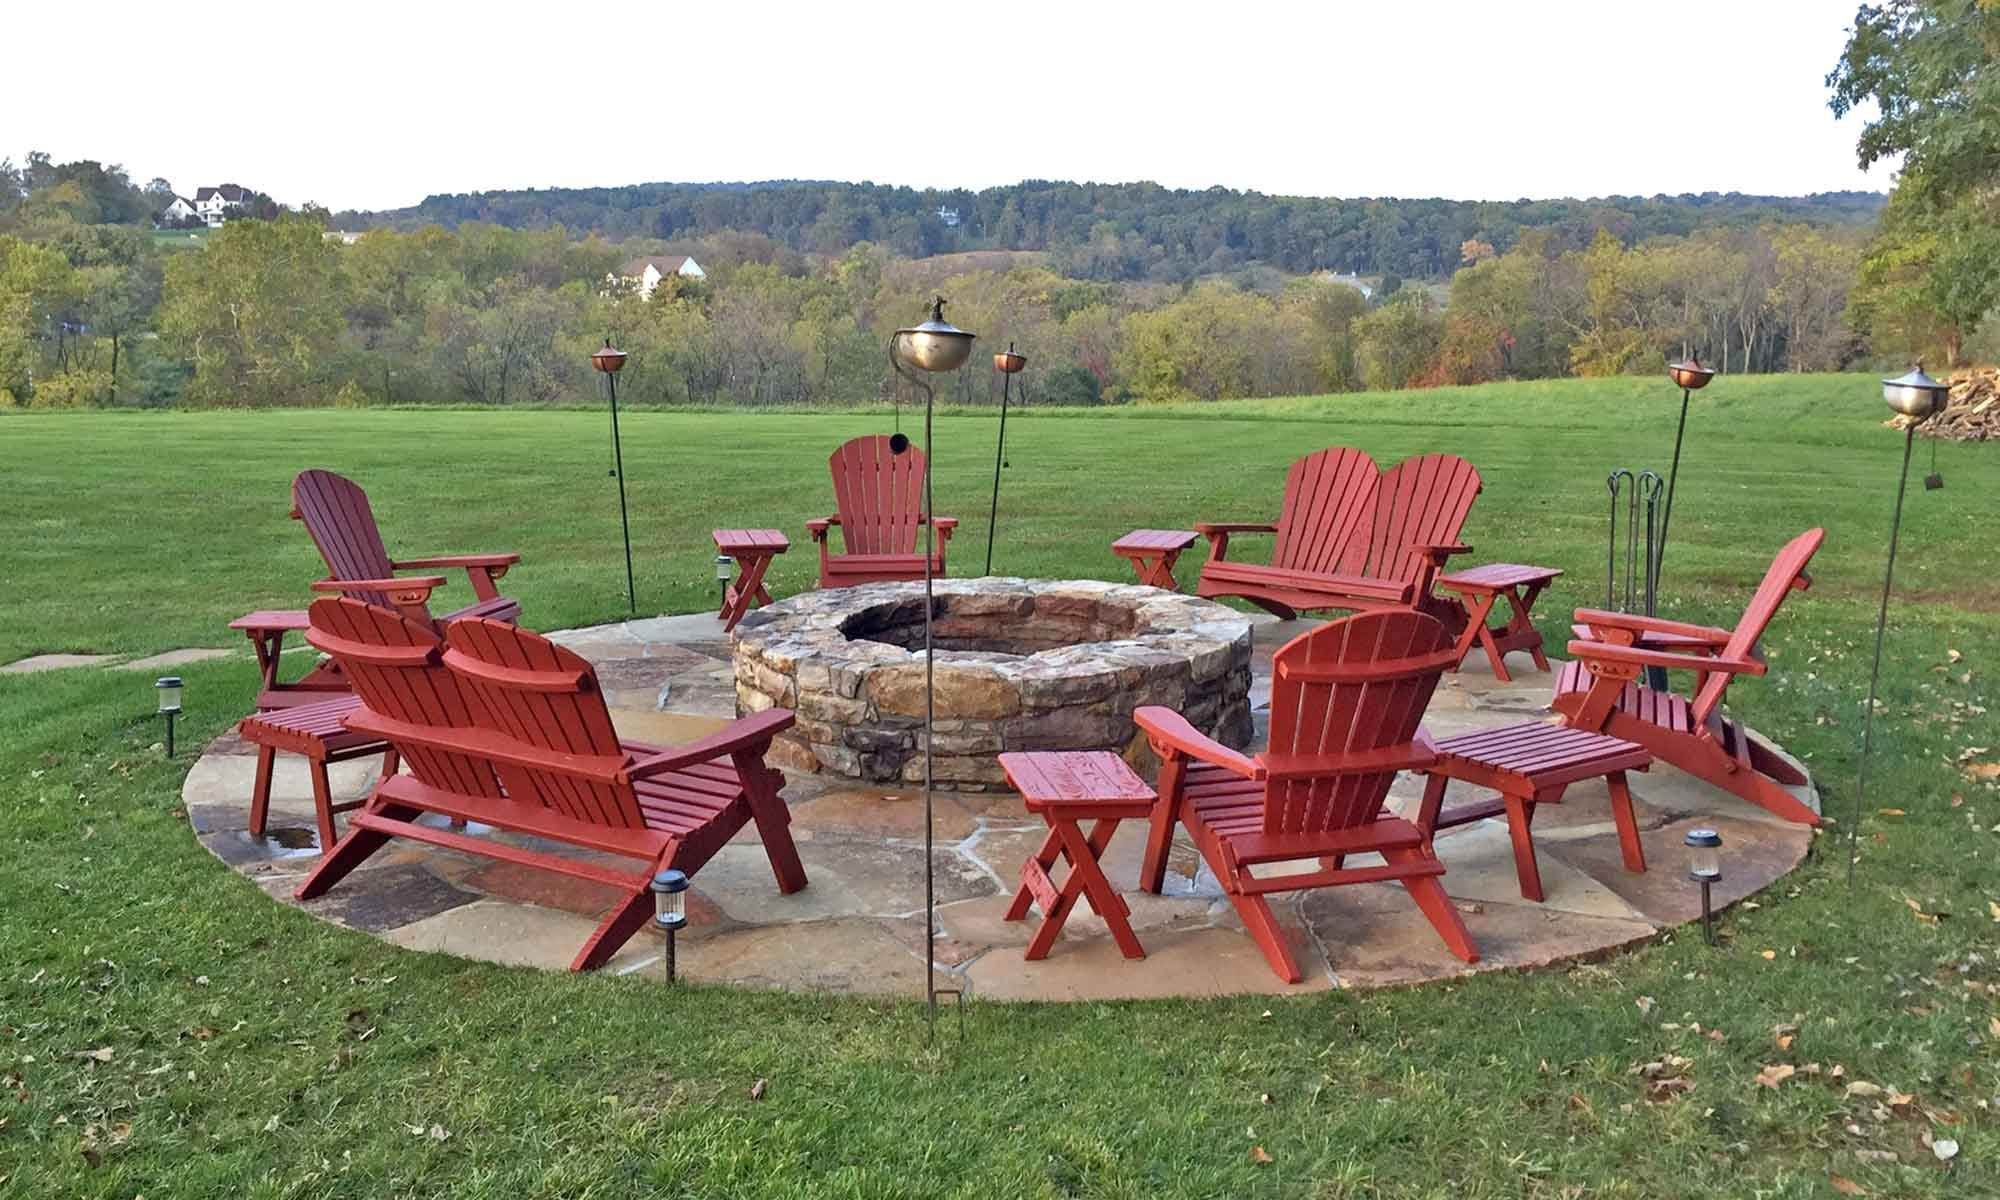 Chairs around firepit